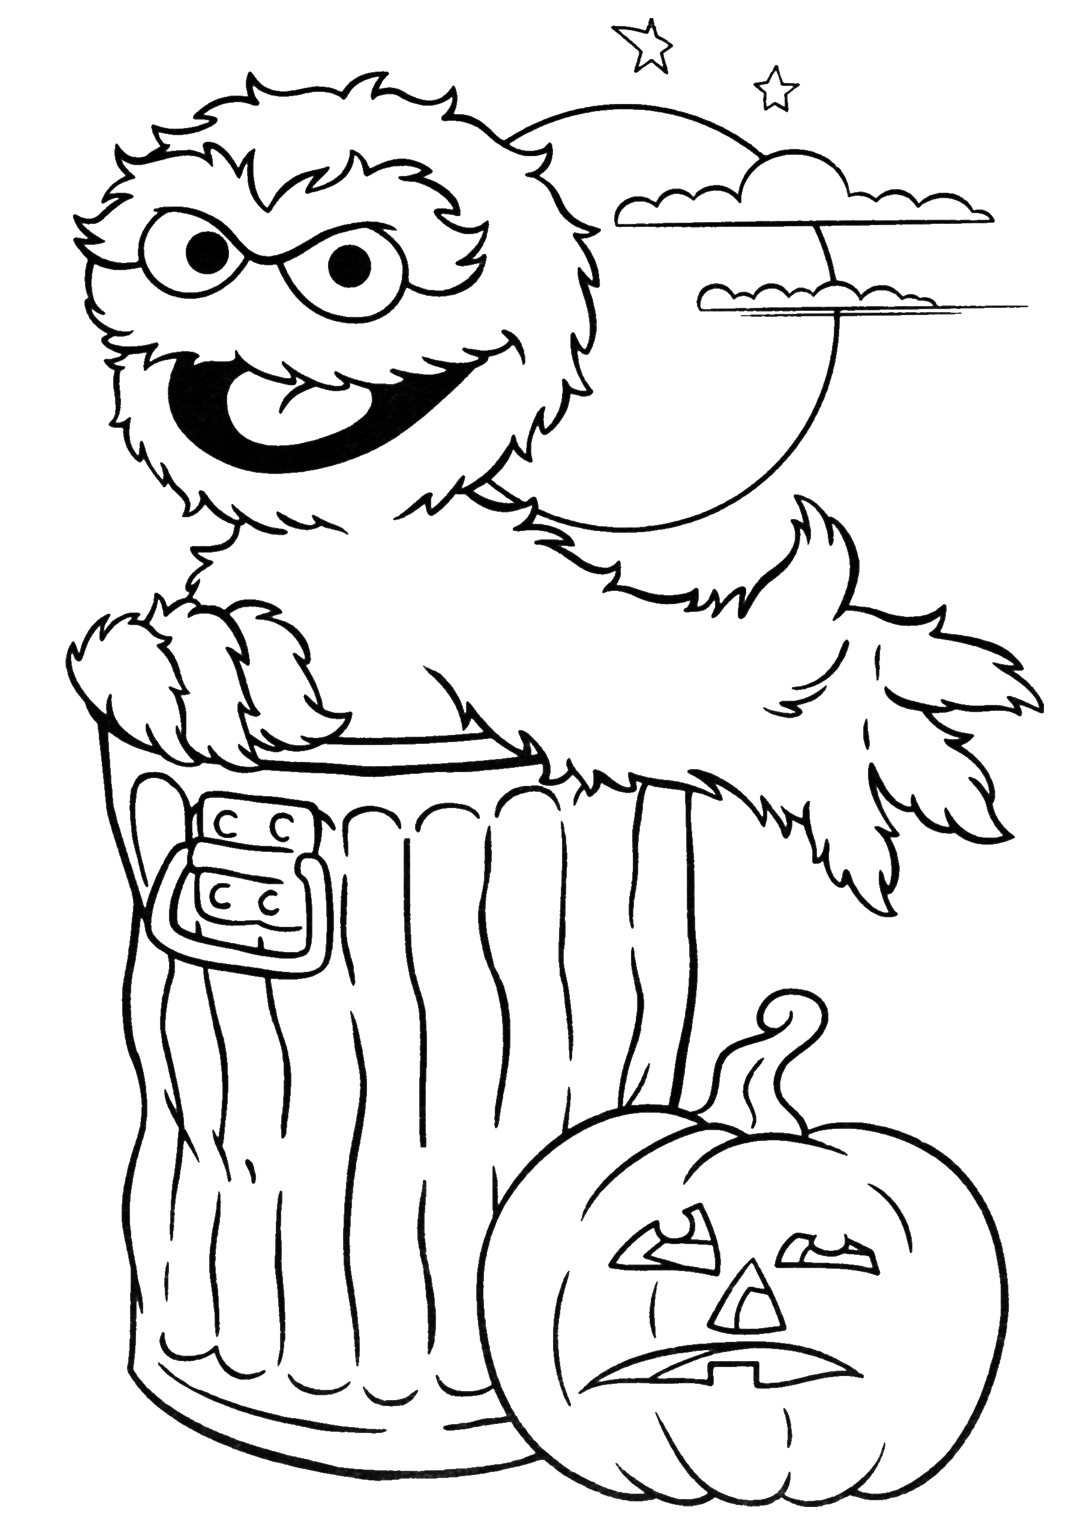 1069x1532 Halloween Colorings Oscar The Grouch Coloring Pages Model Coloring